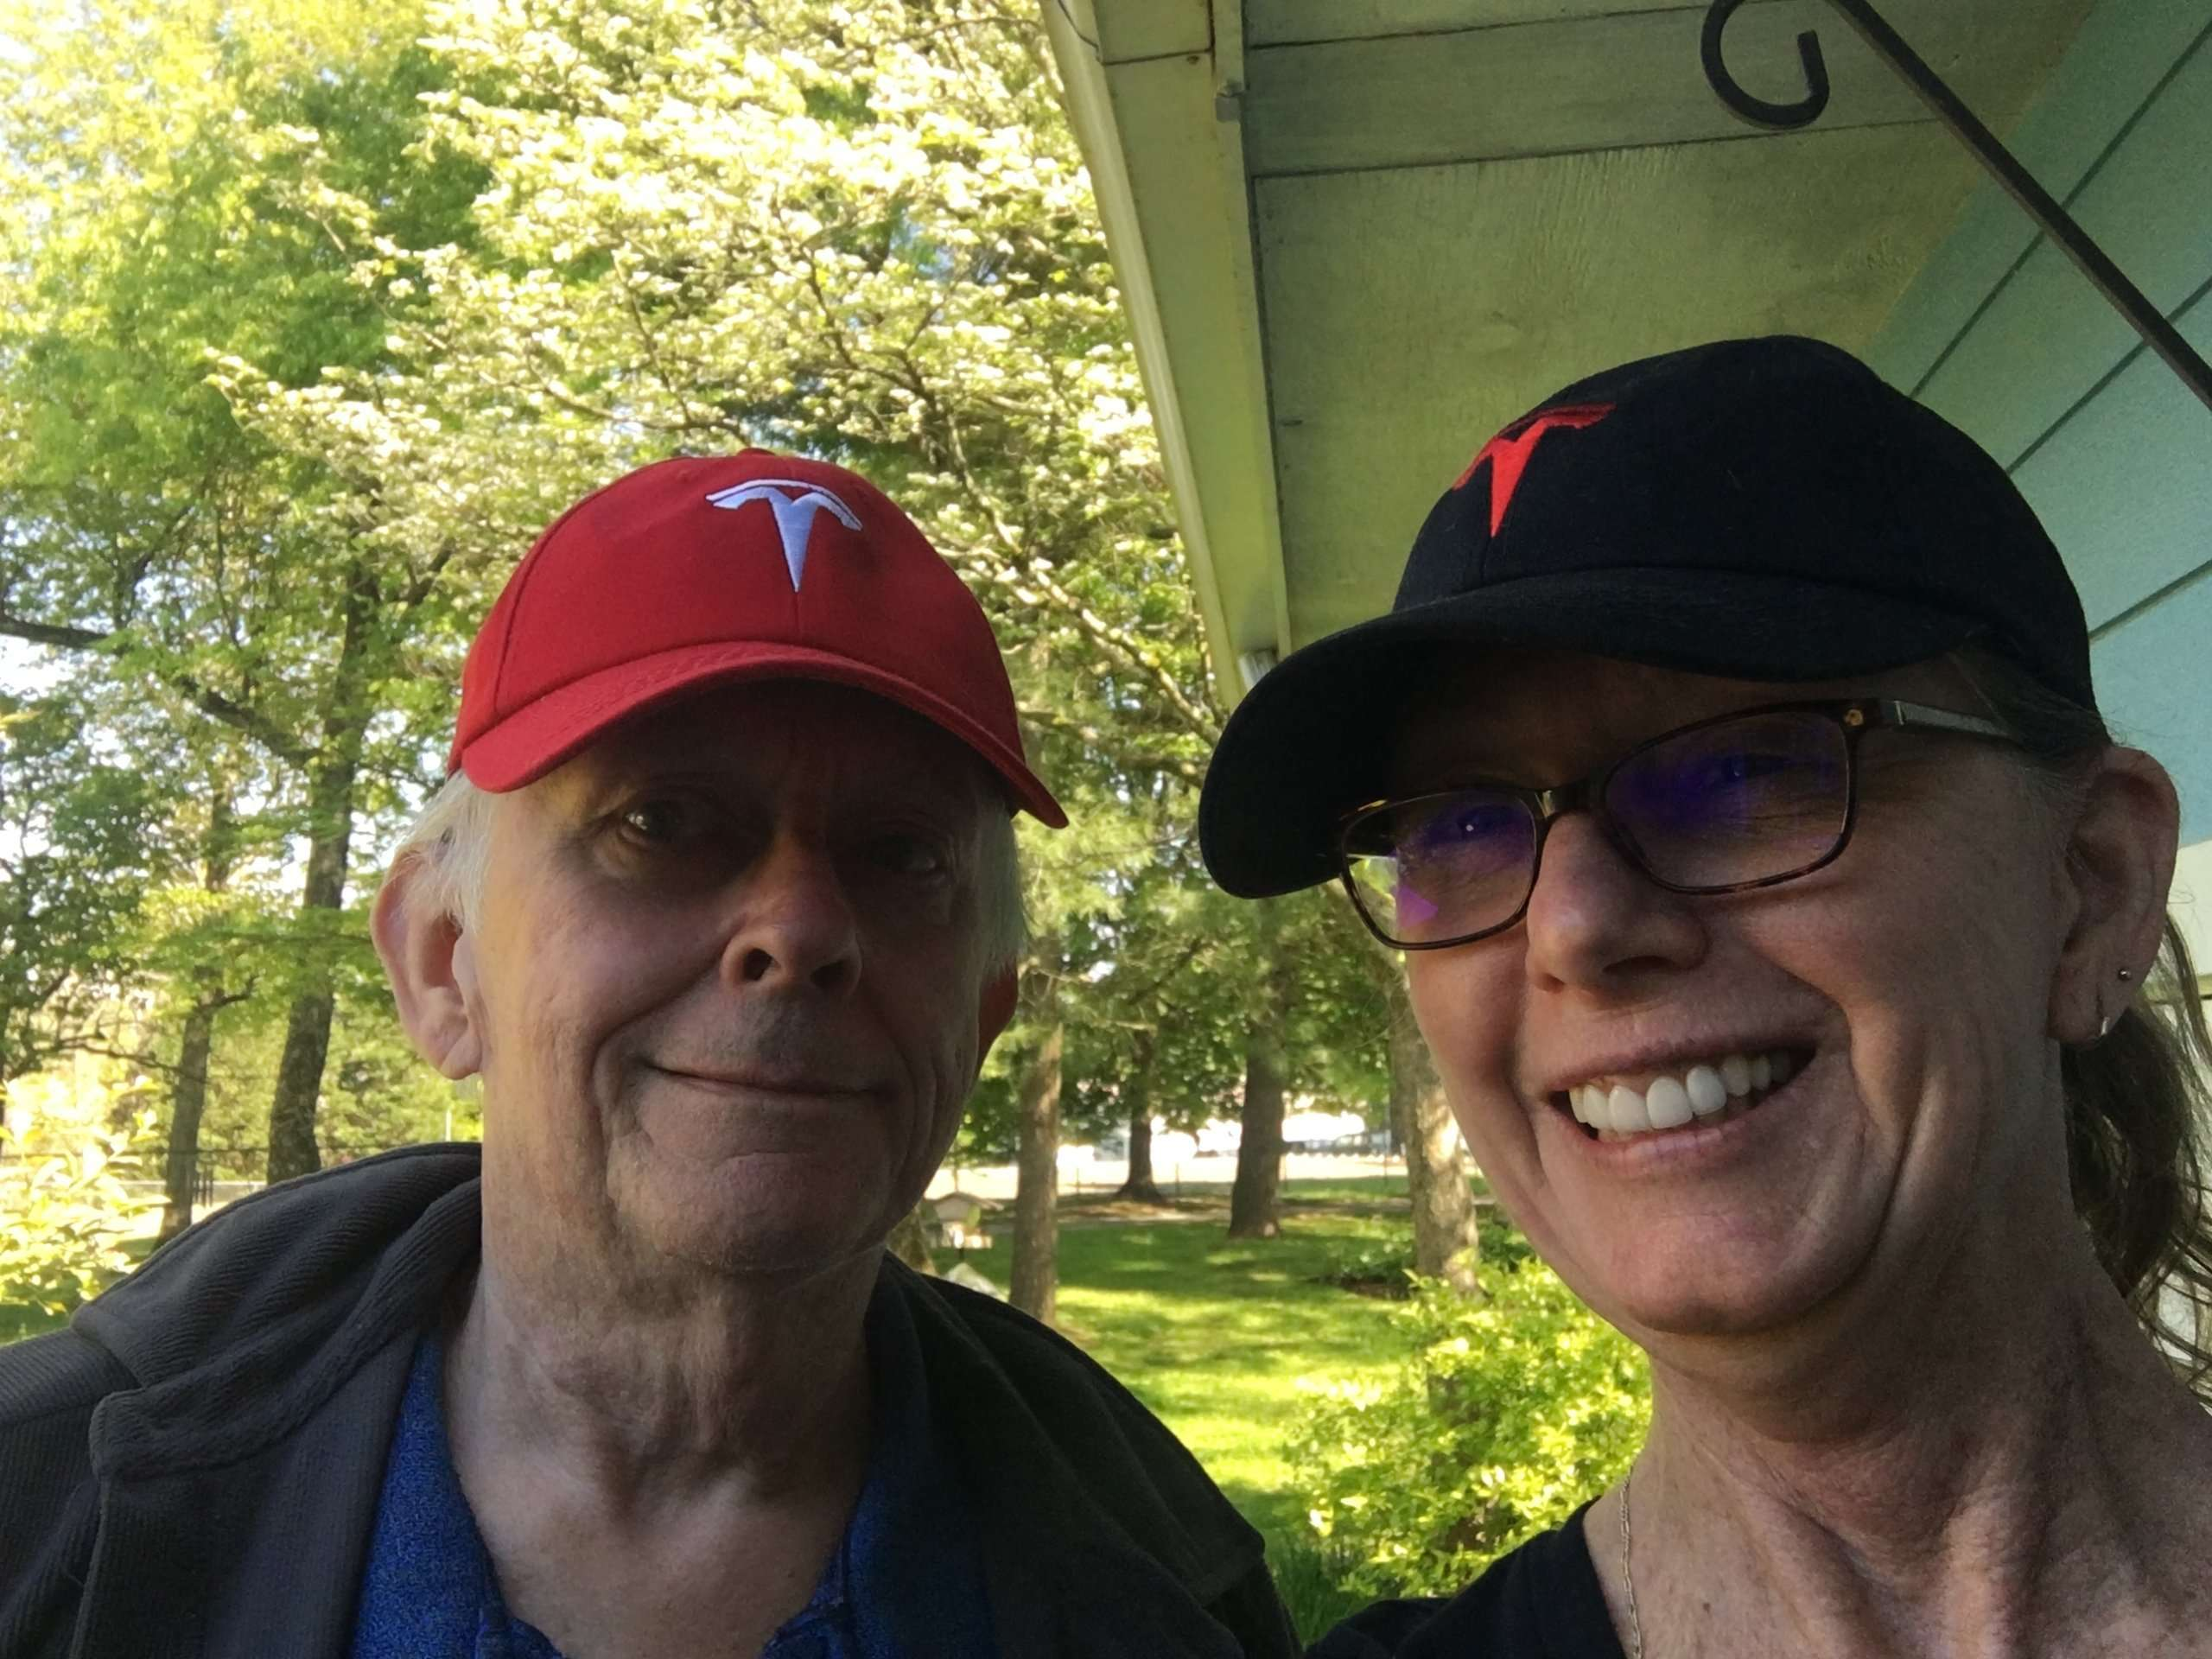 Jack Goodwin stands to the left in a red Tesla hat and Susan Goodwin stand to right in a black Tesla hat taking a selfie.